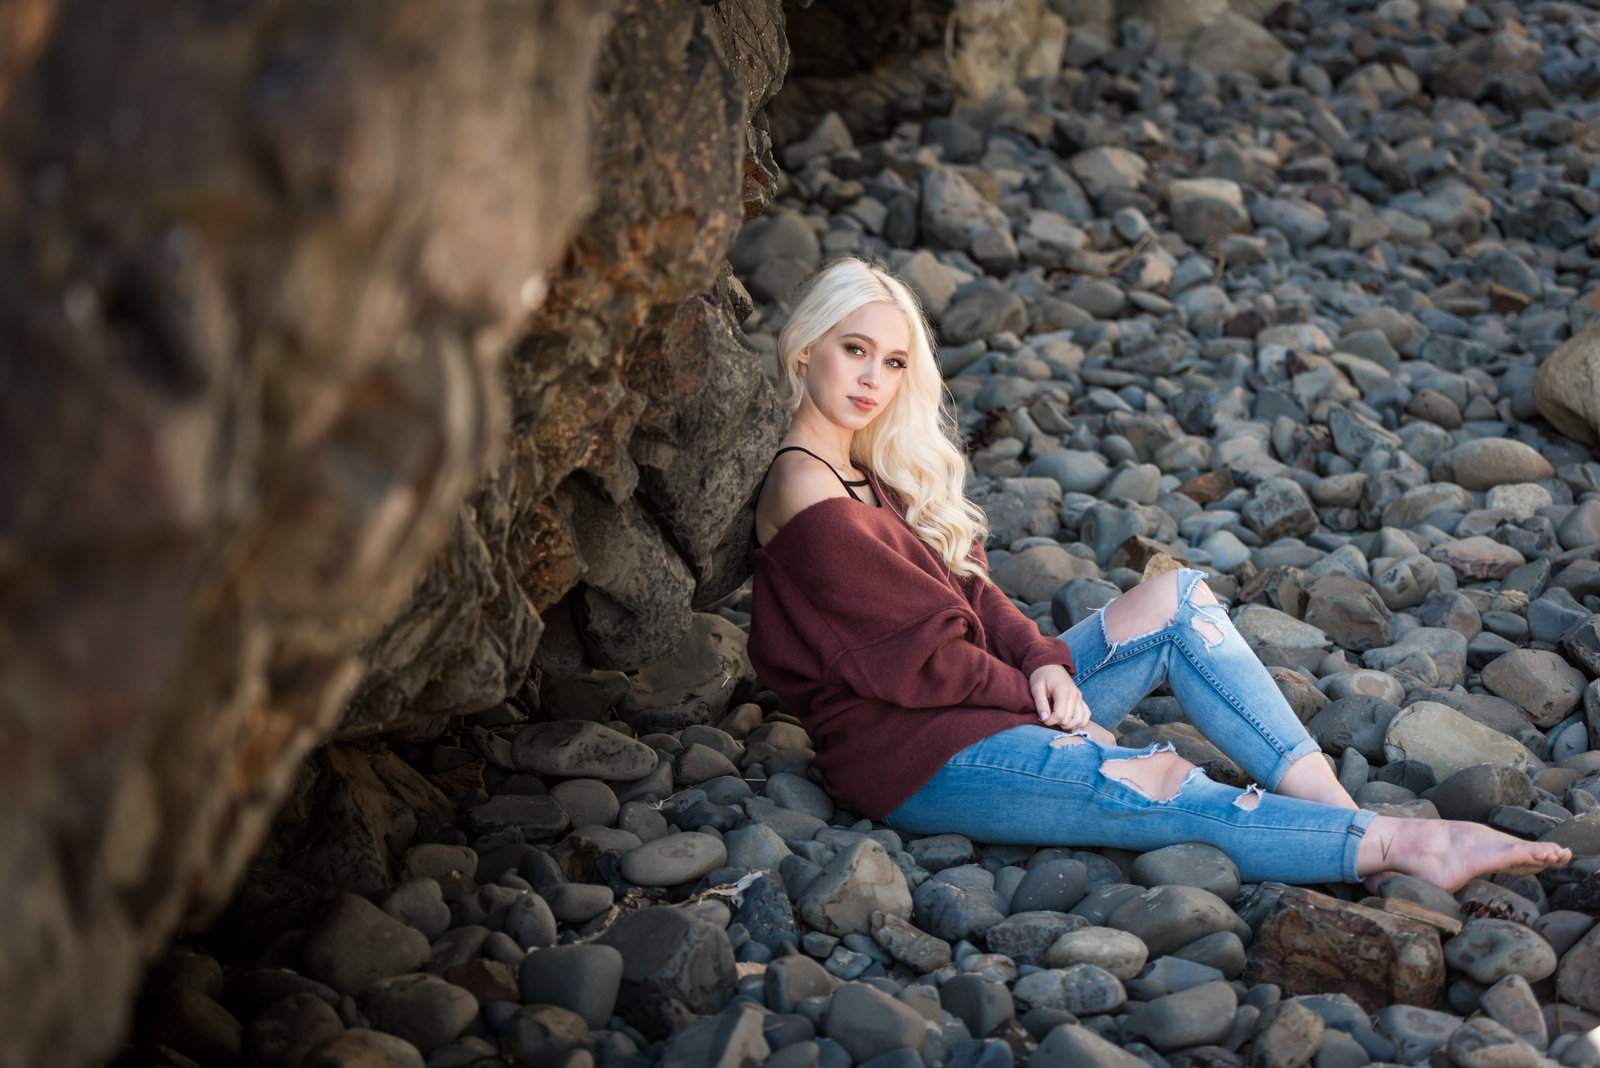 tara-brown-photography-senior-photos_Cannon-Beach-Tawny_061616_06-Edit